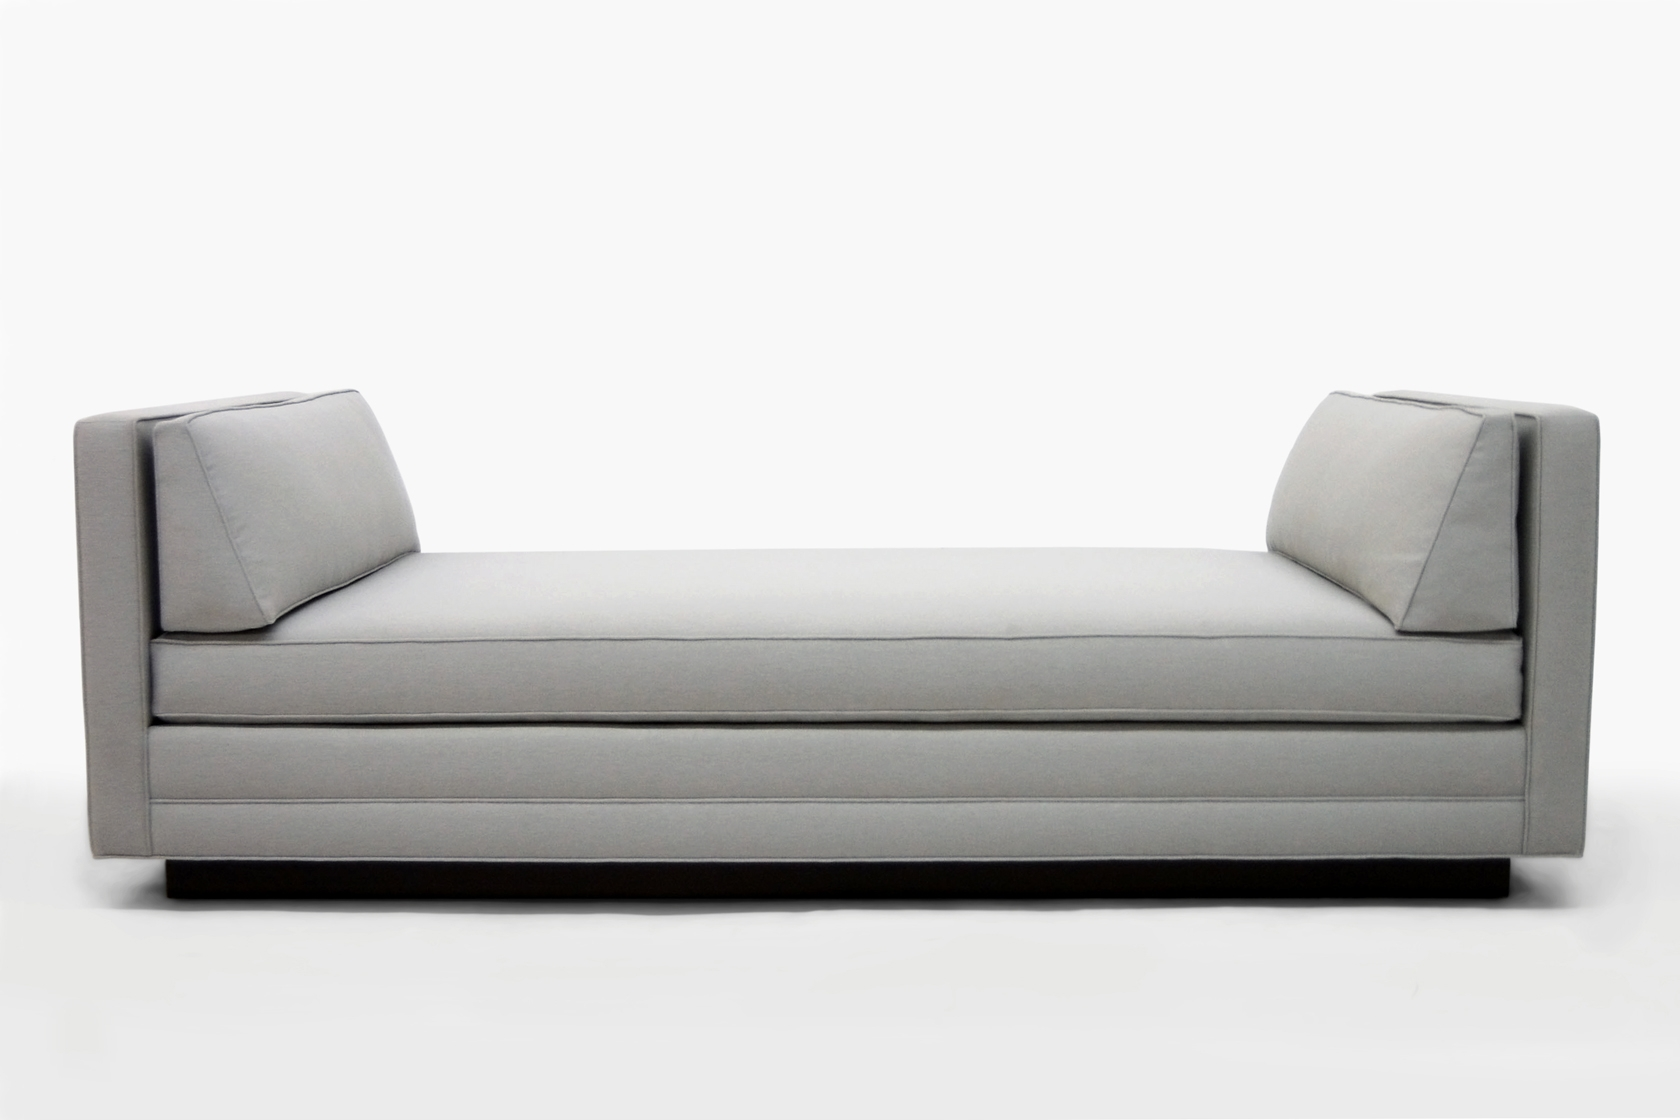 Daybeds And Chaises Chaise Lounges – Bazzle Within Most Up To Date Daybed Chaises (View 8 of 15)